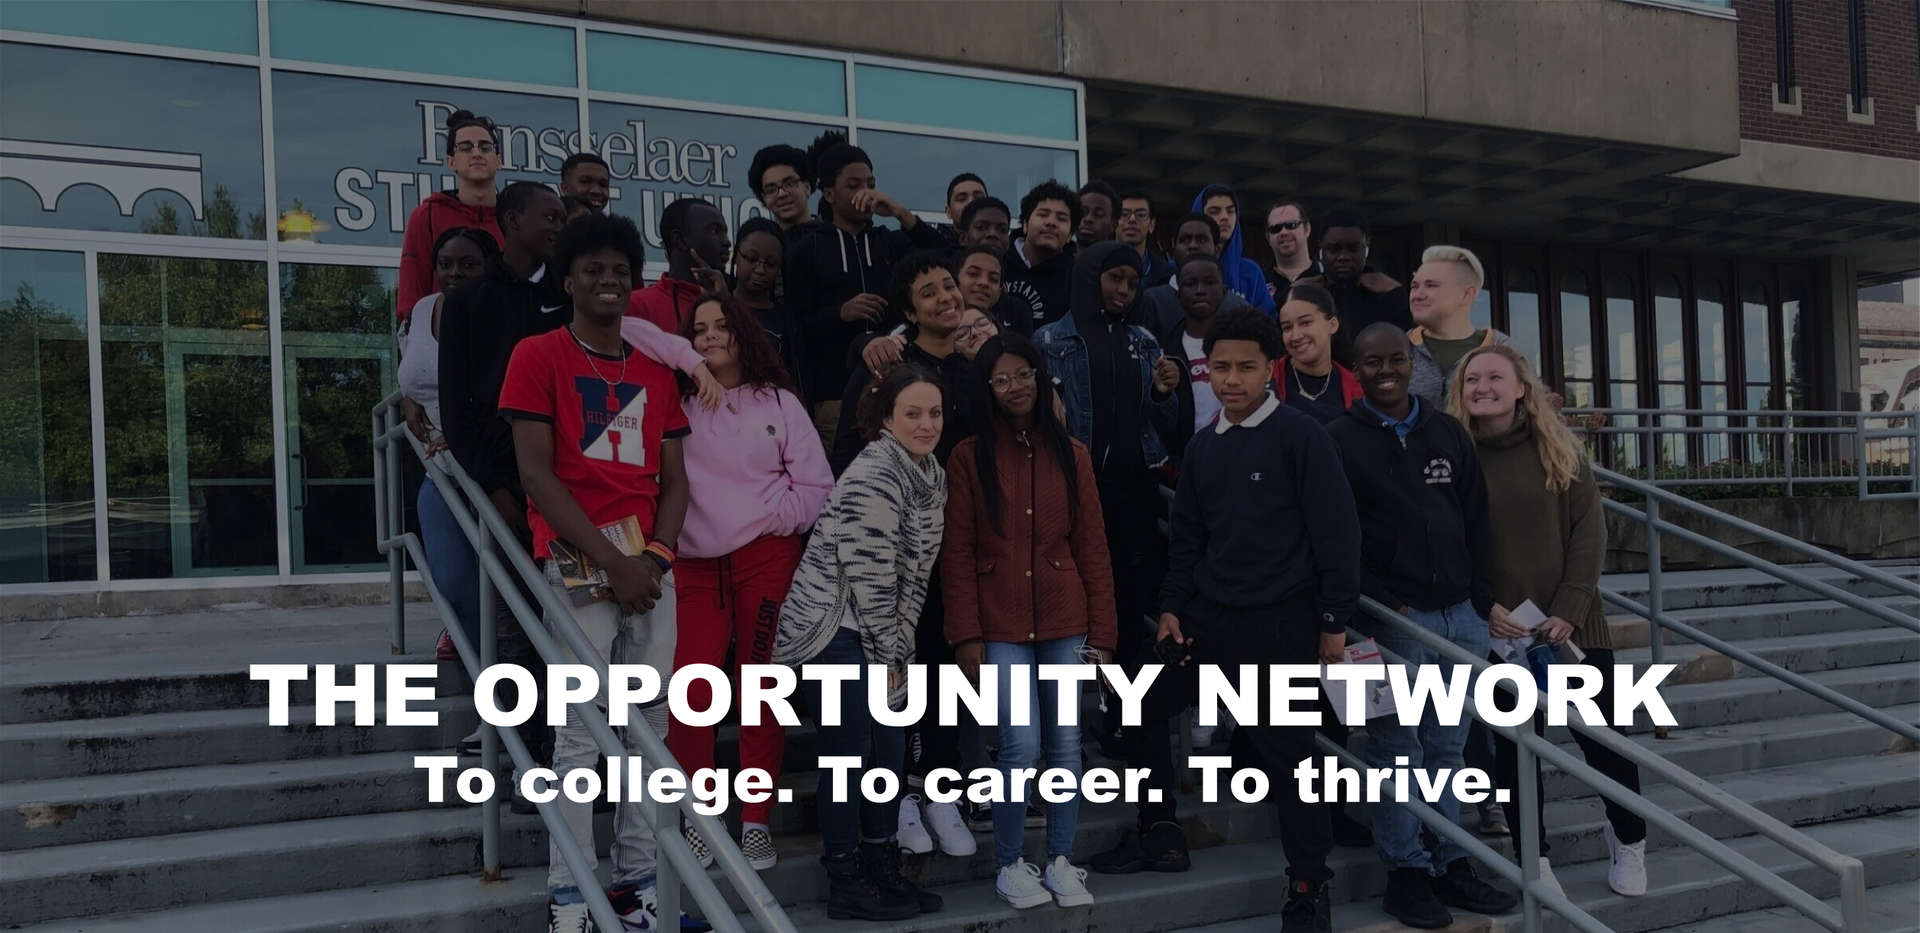 The Opportunity Network - to college, to career, to thrive